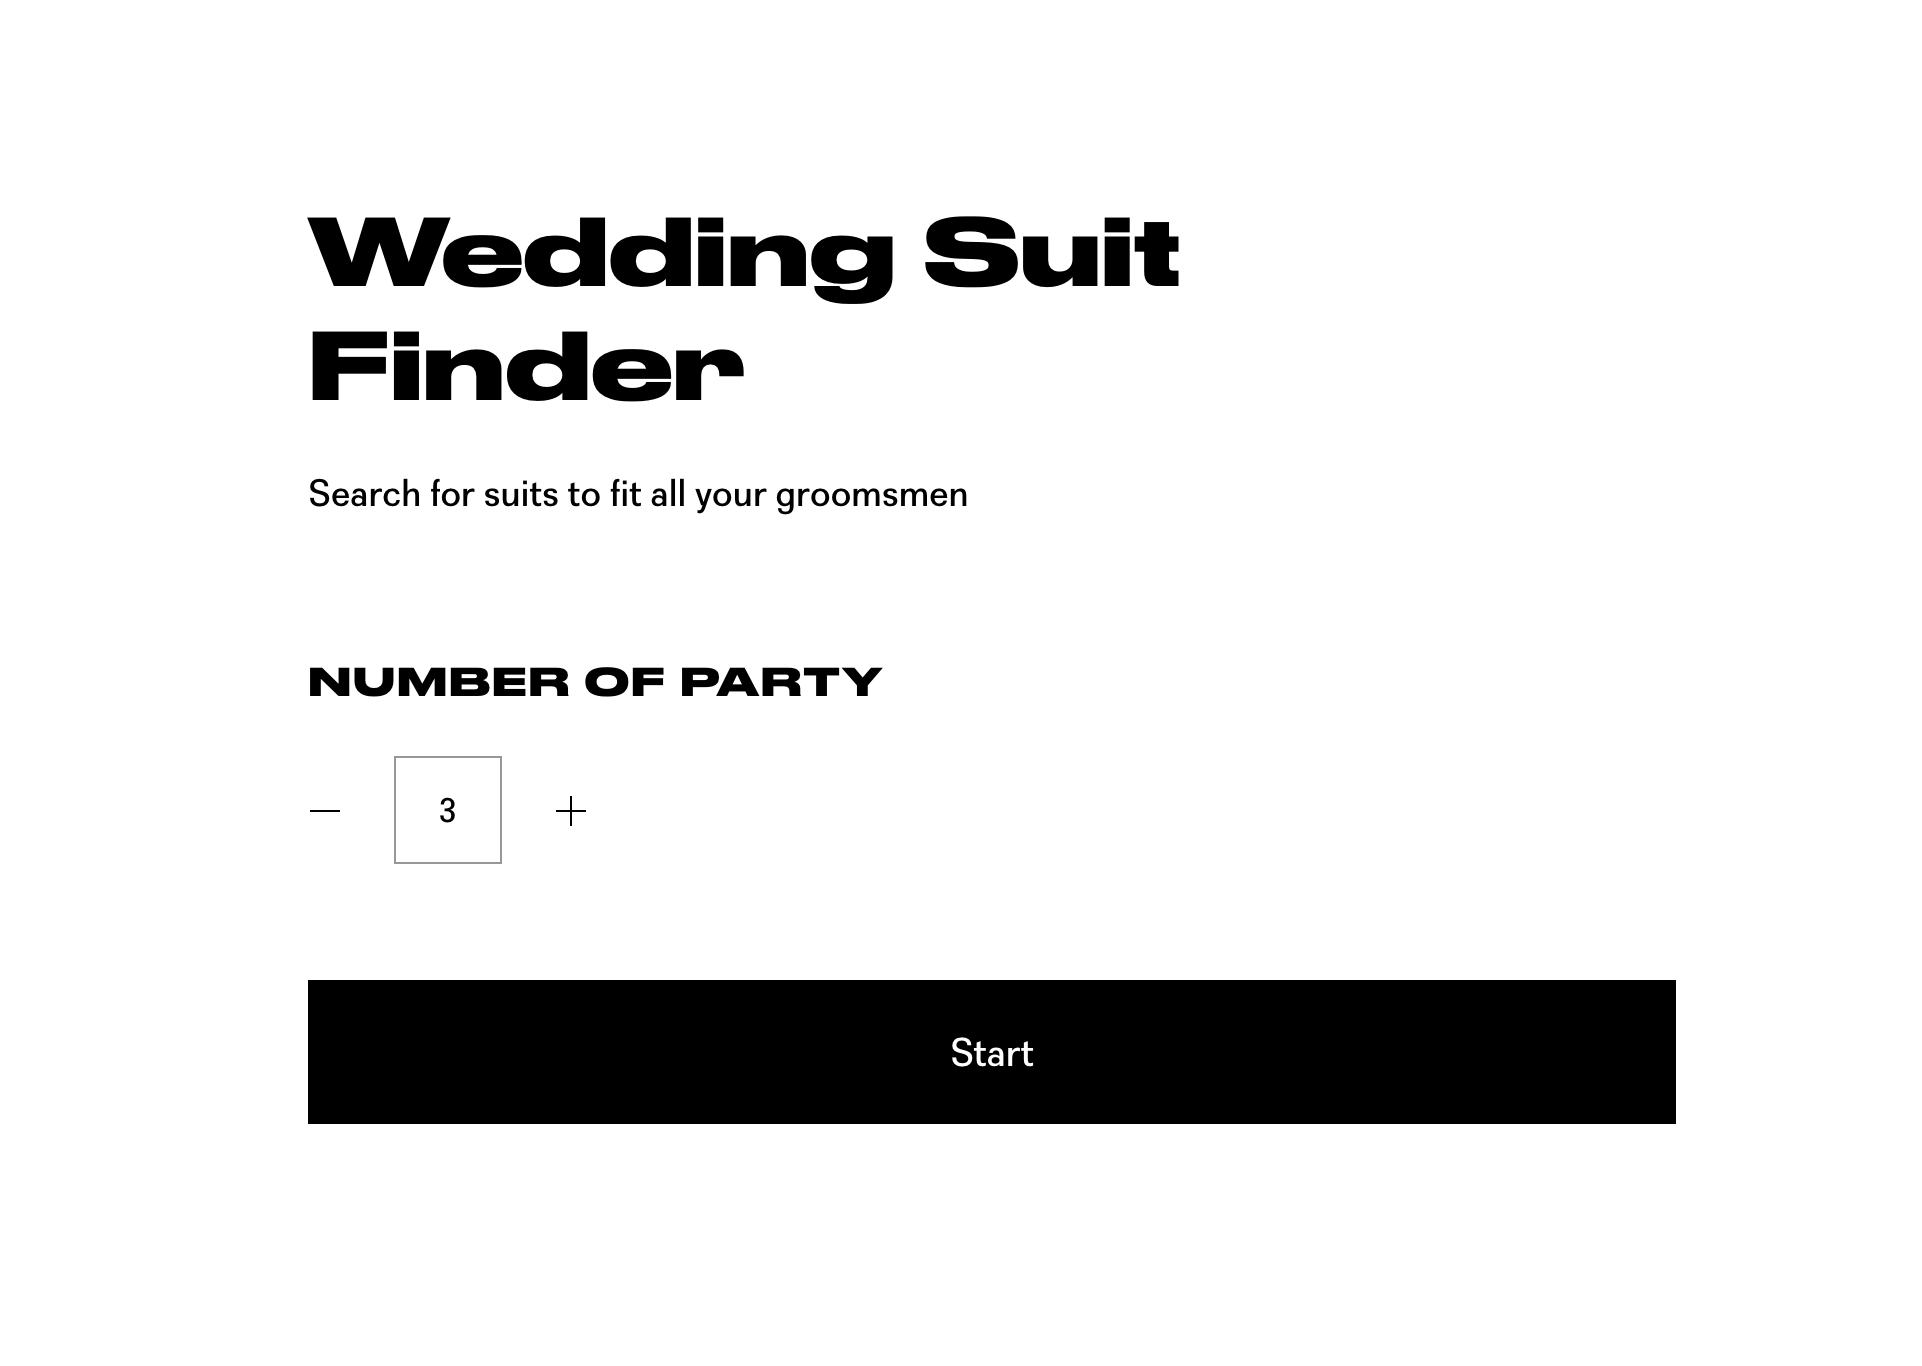 Preview of Slater Menswear wedding suit finder tool